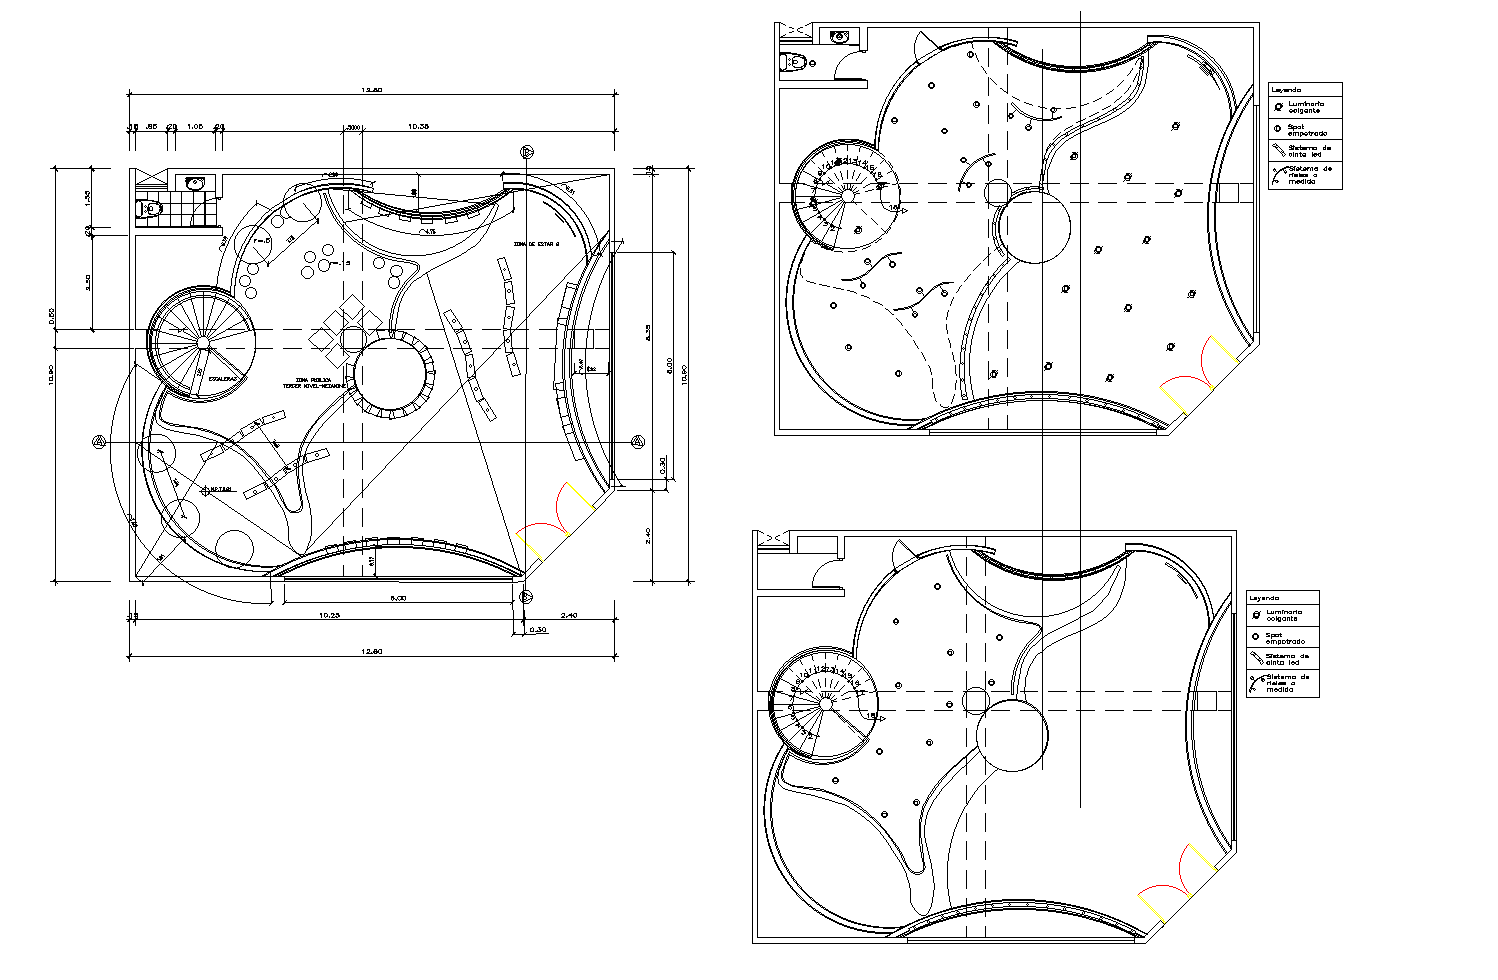 Ceiling layout of busterminal plan detail dwg file.